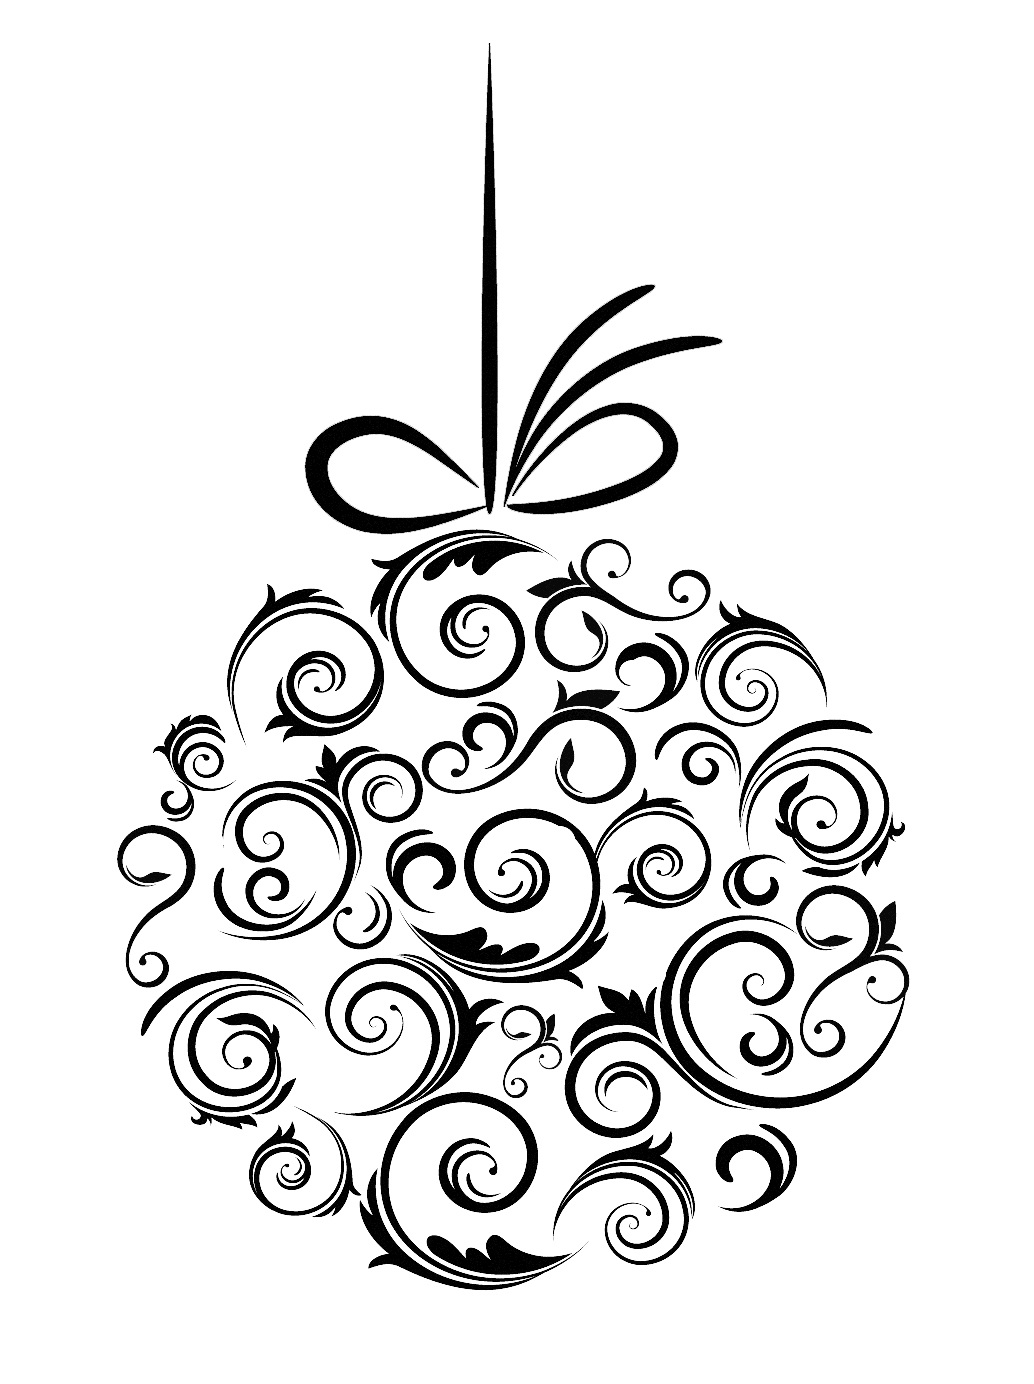 Christmas ornaments clipart black and white svg clip free Christmas ornament black and white xmas tree ornament clipart black ... clip free